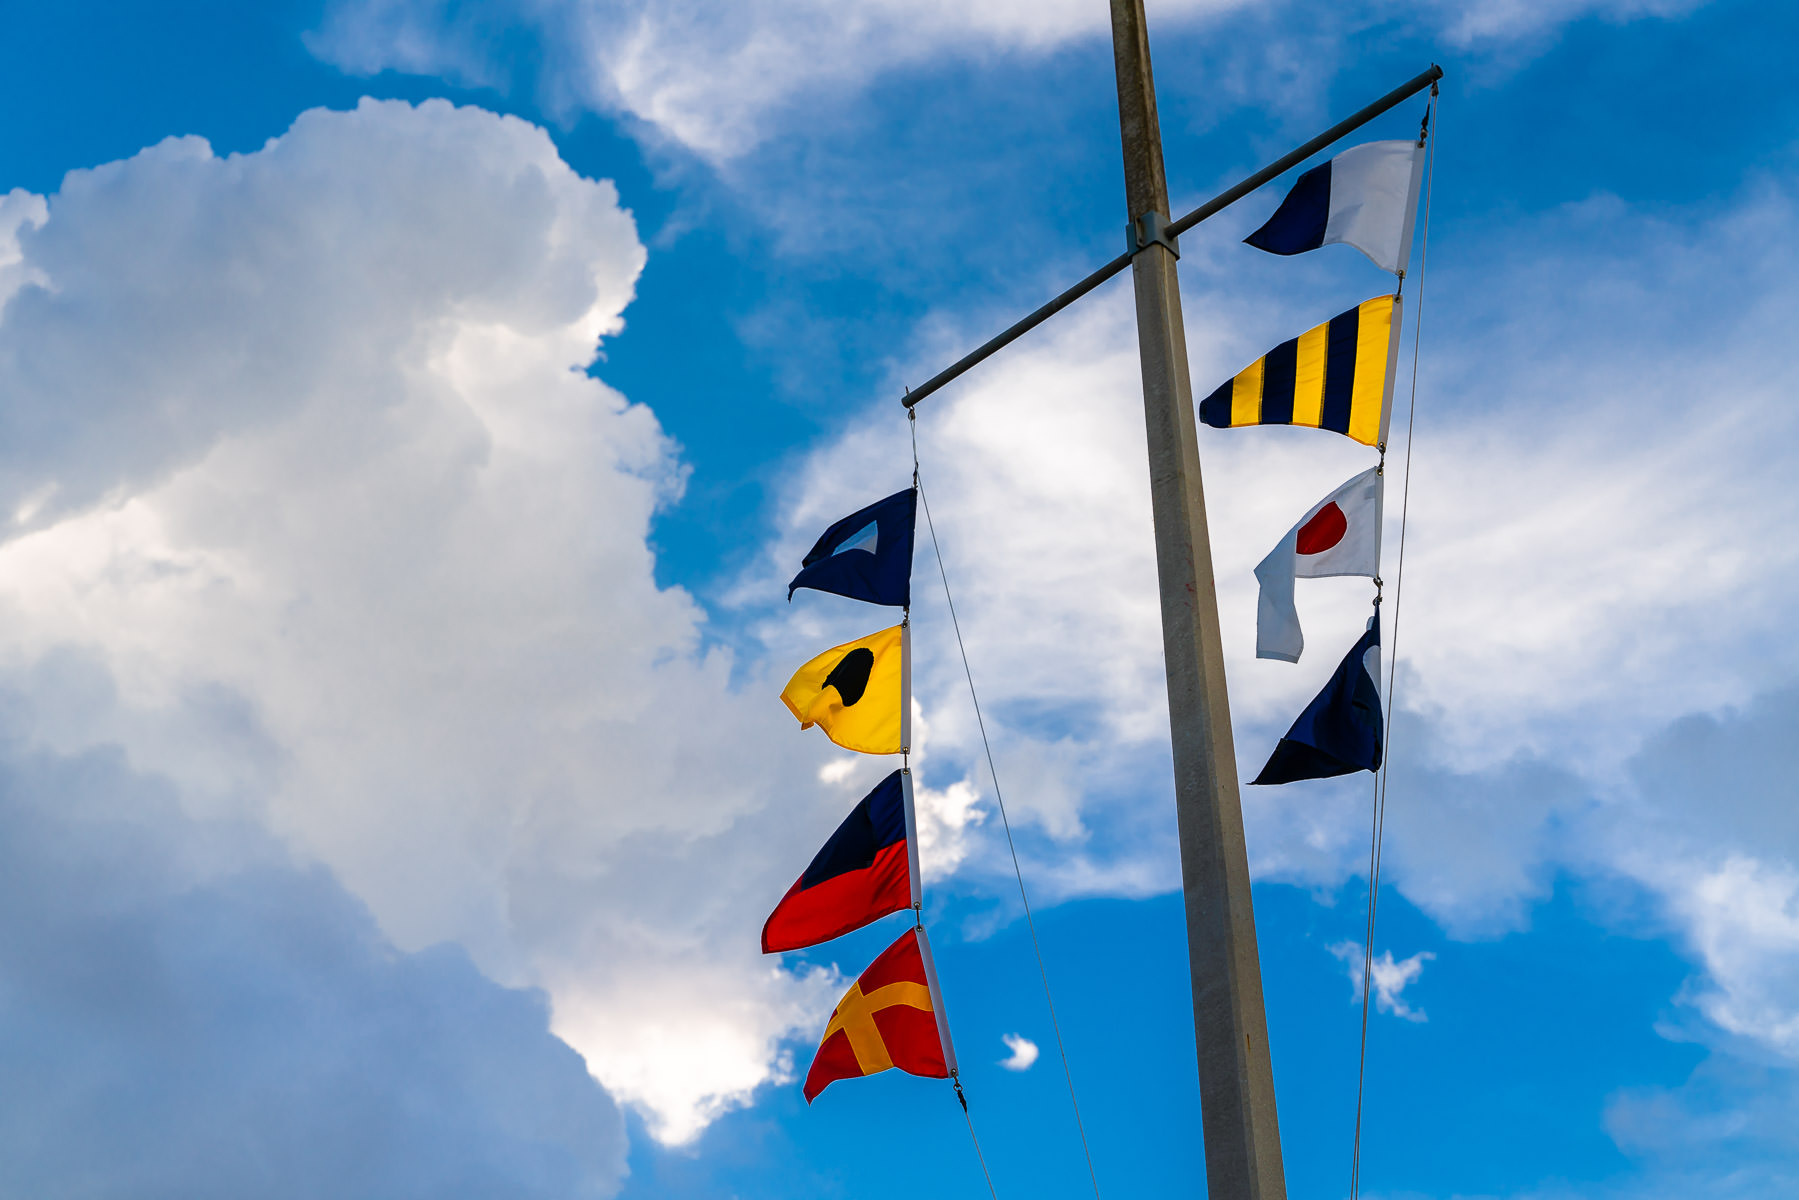 Maritime flags flutter in the breeze in Galveston, Texas.